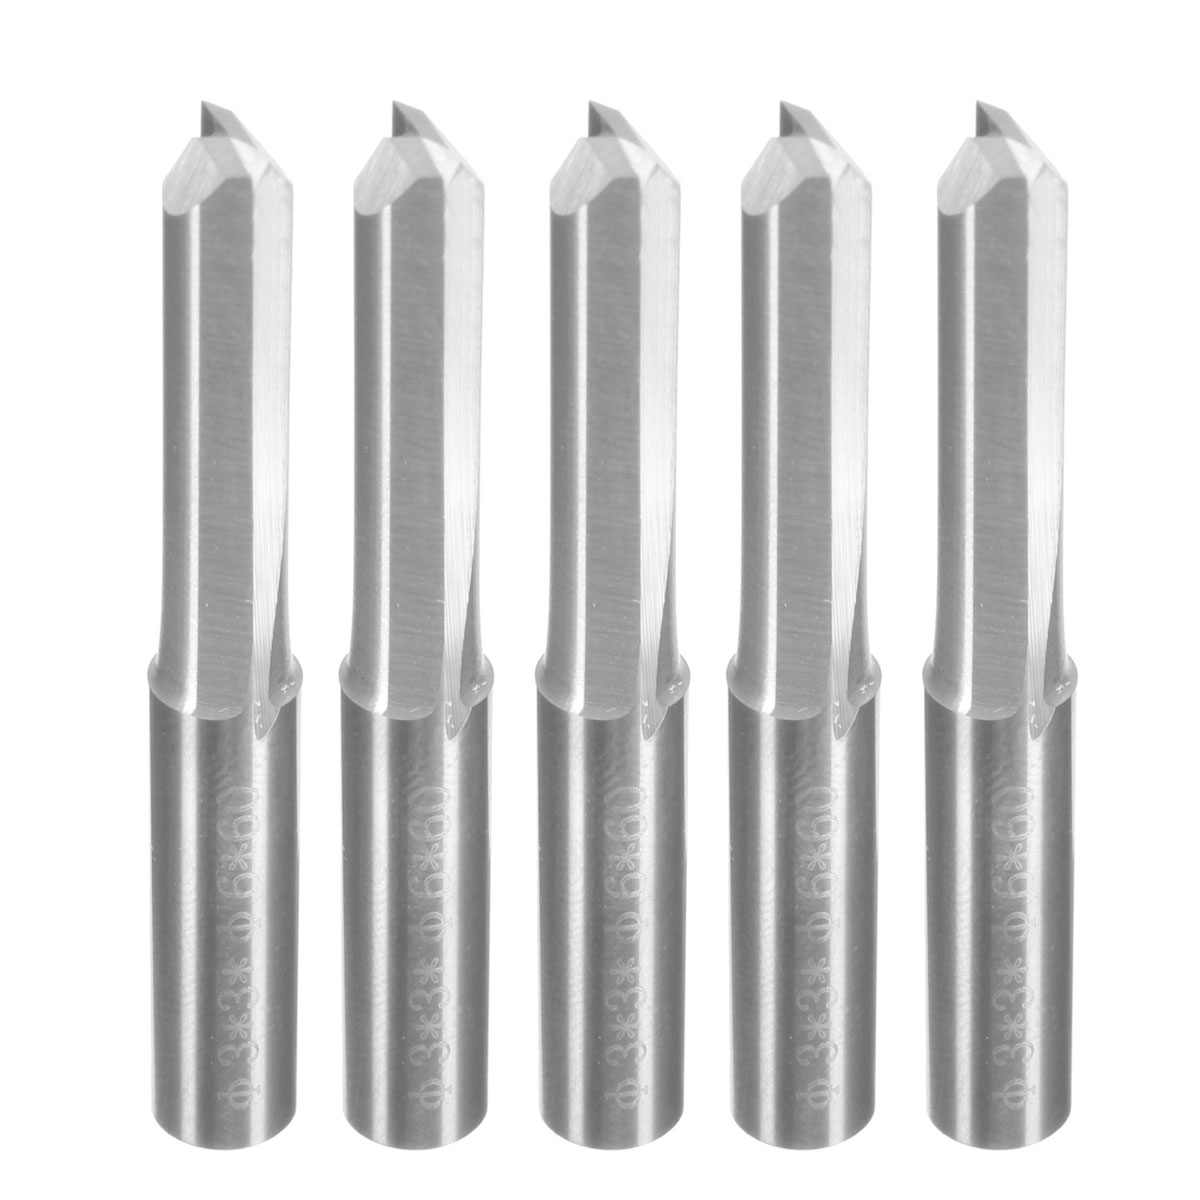 5PCS//6mm Shank Double Flutes CNC Router Bits Straight Engraving Cutter~22mm